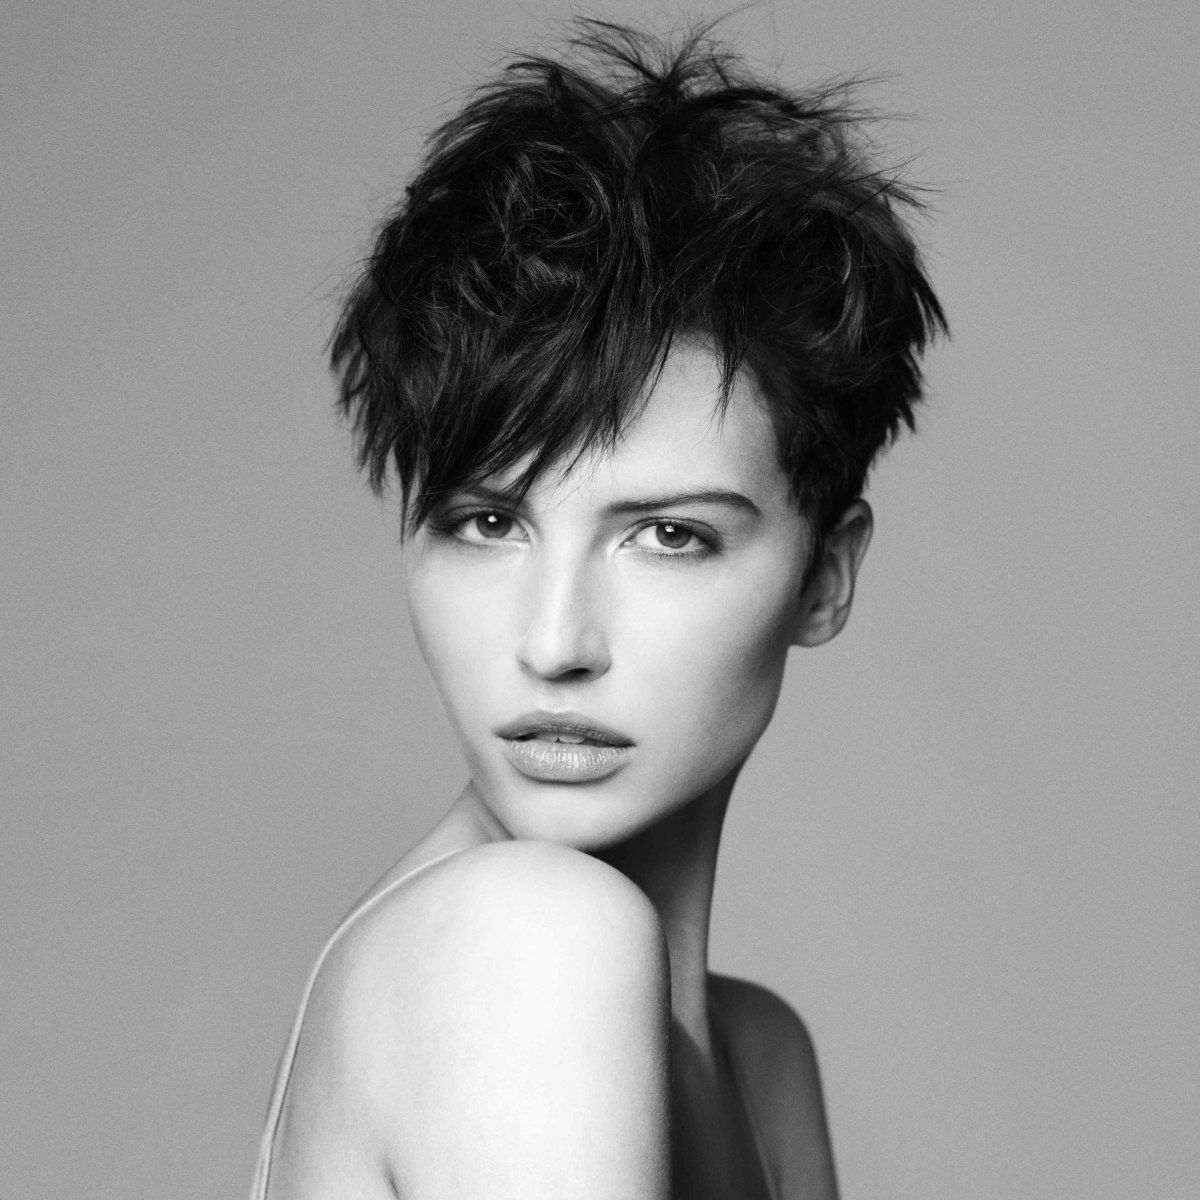 Short Razor Cut Hairstyles Short Razor Cut Hairstyle That Can Be Styled In Or Out Of The Face